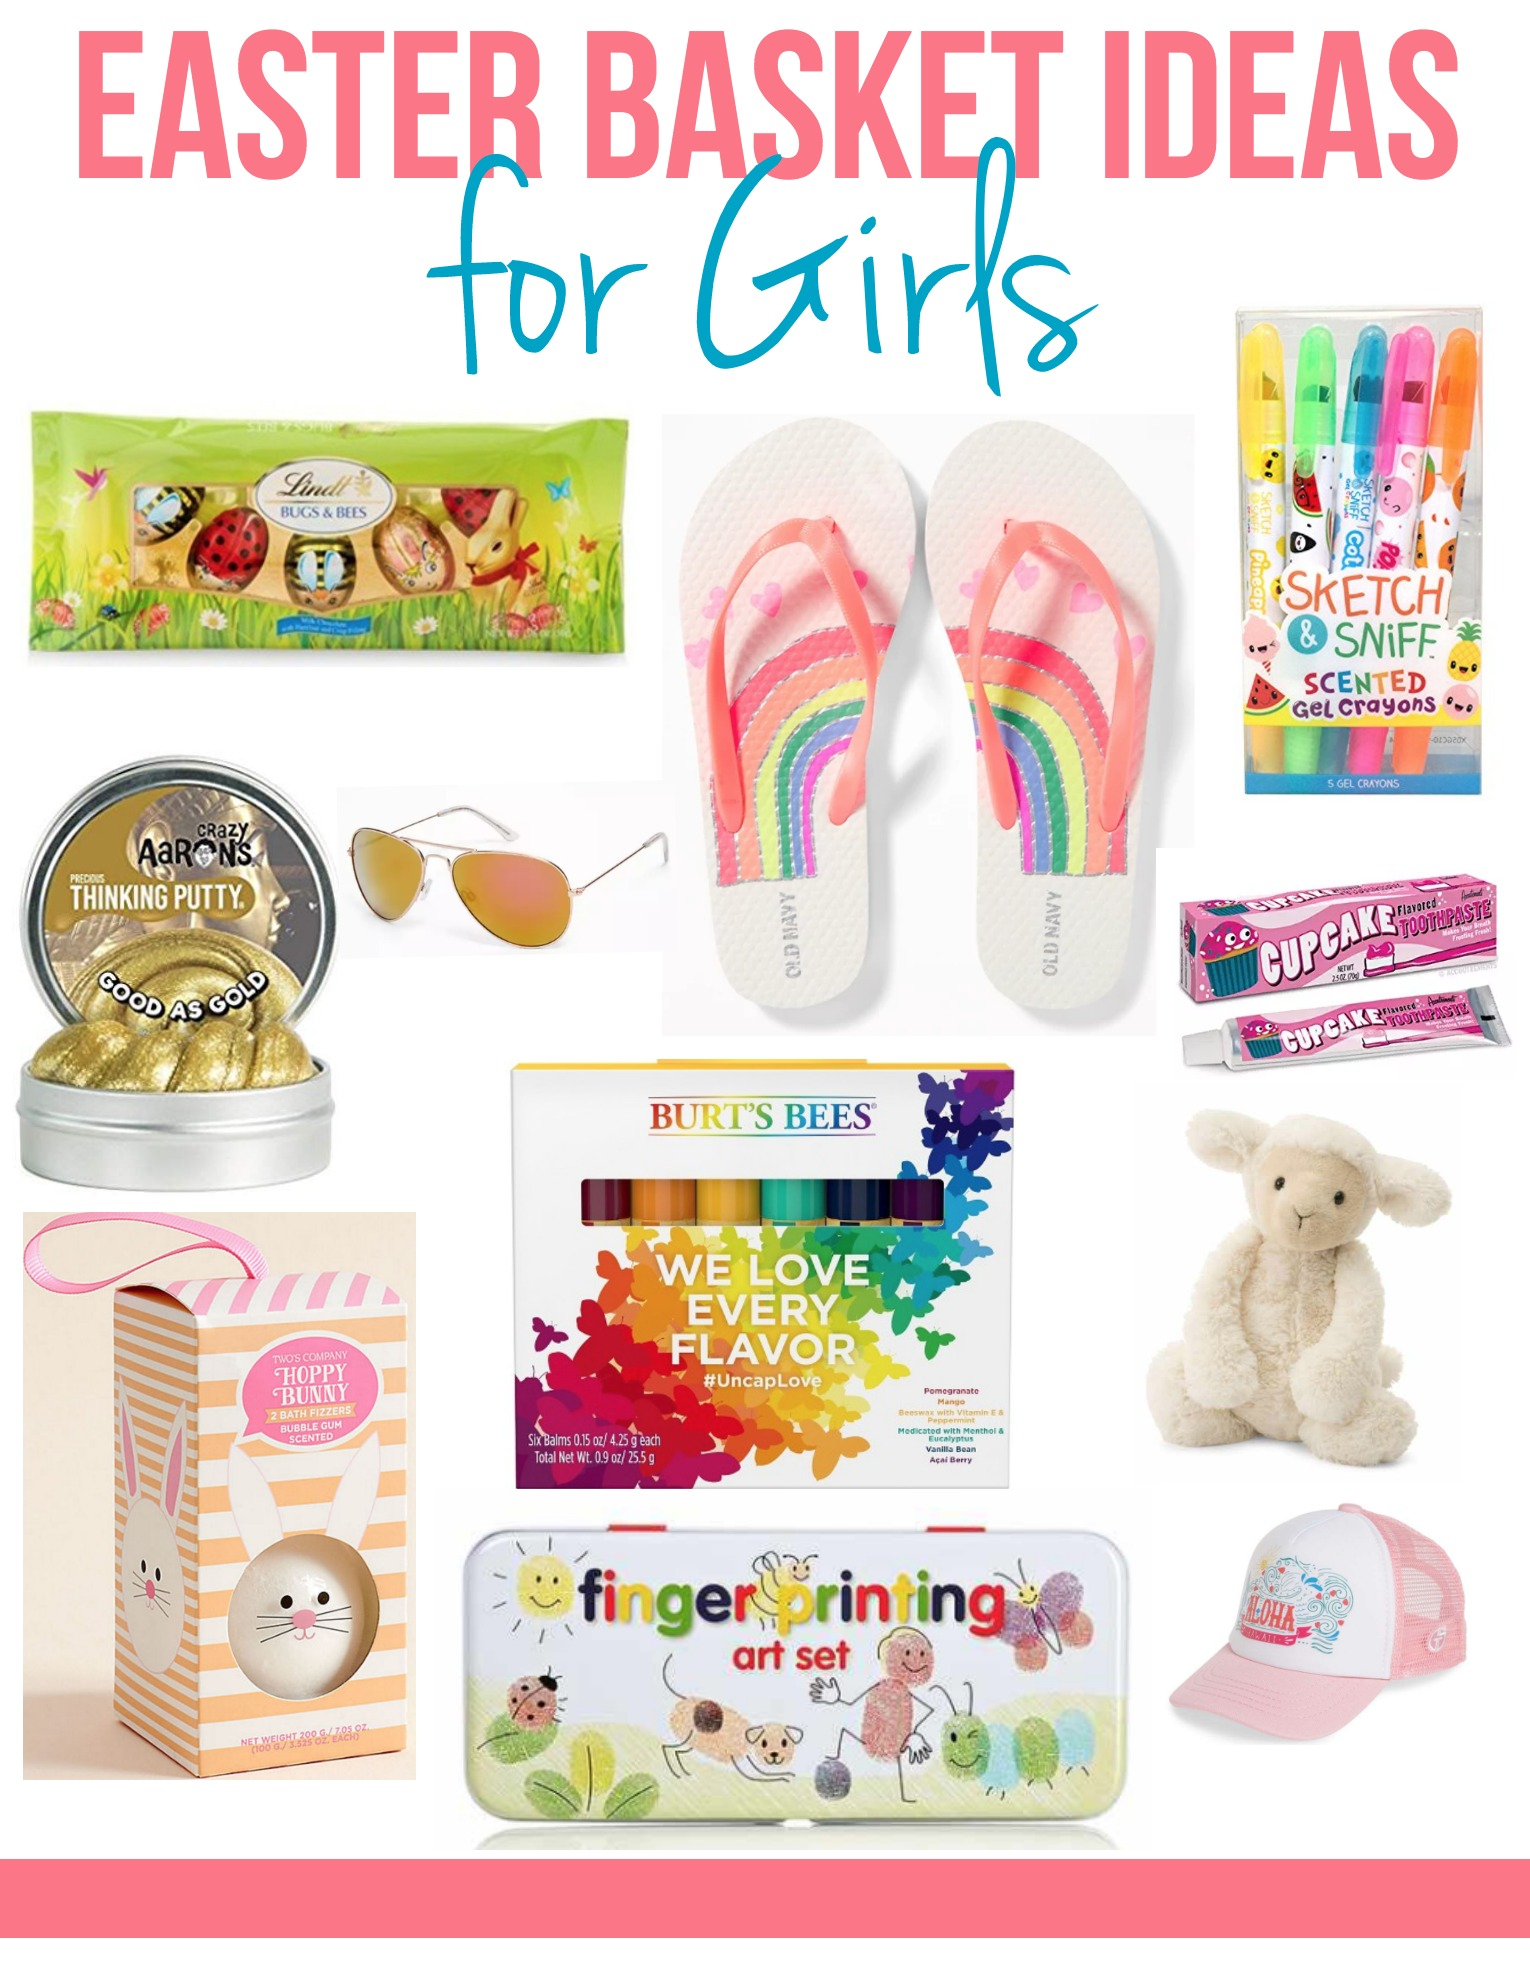 Easter basket ideas for girls on myfrugaladventures.com. Cute little gift ideas for girls.